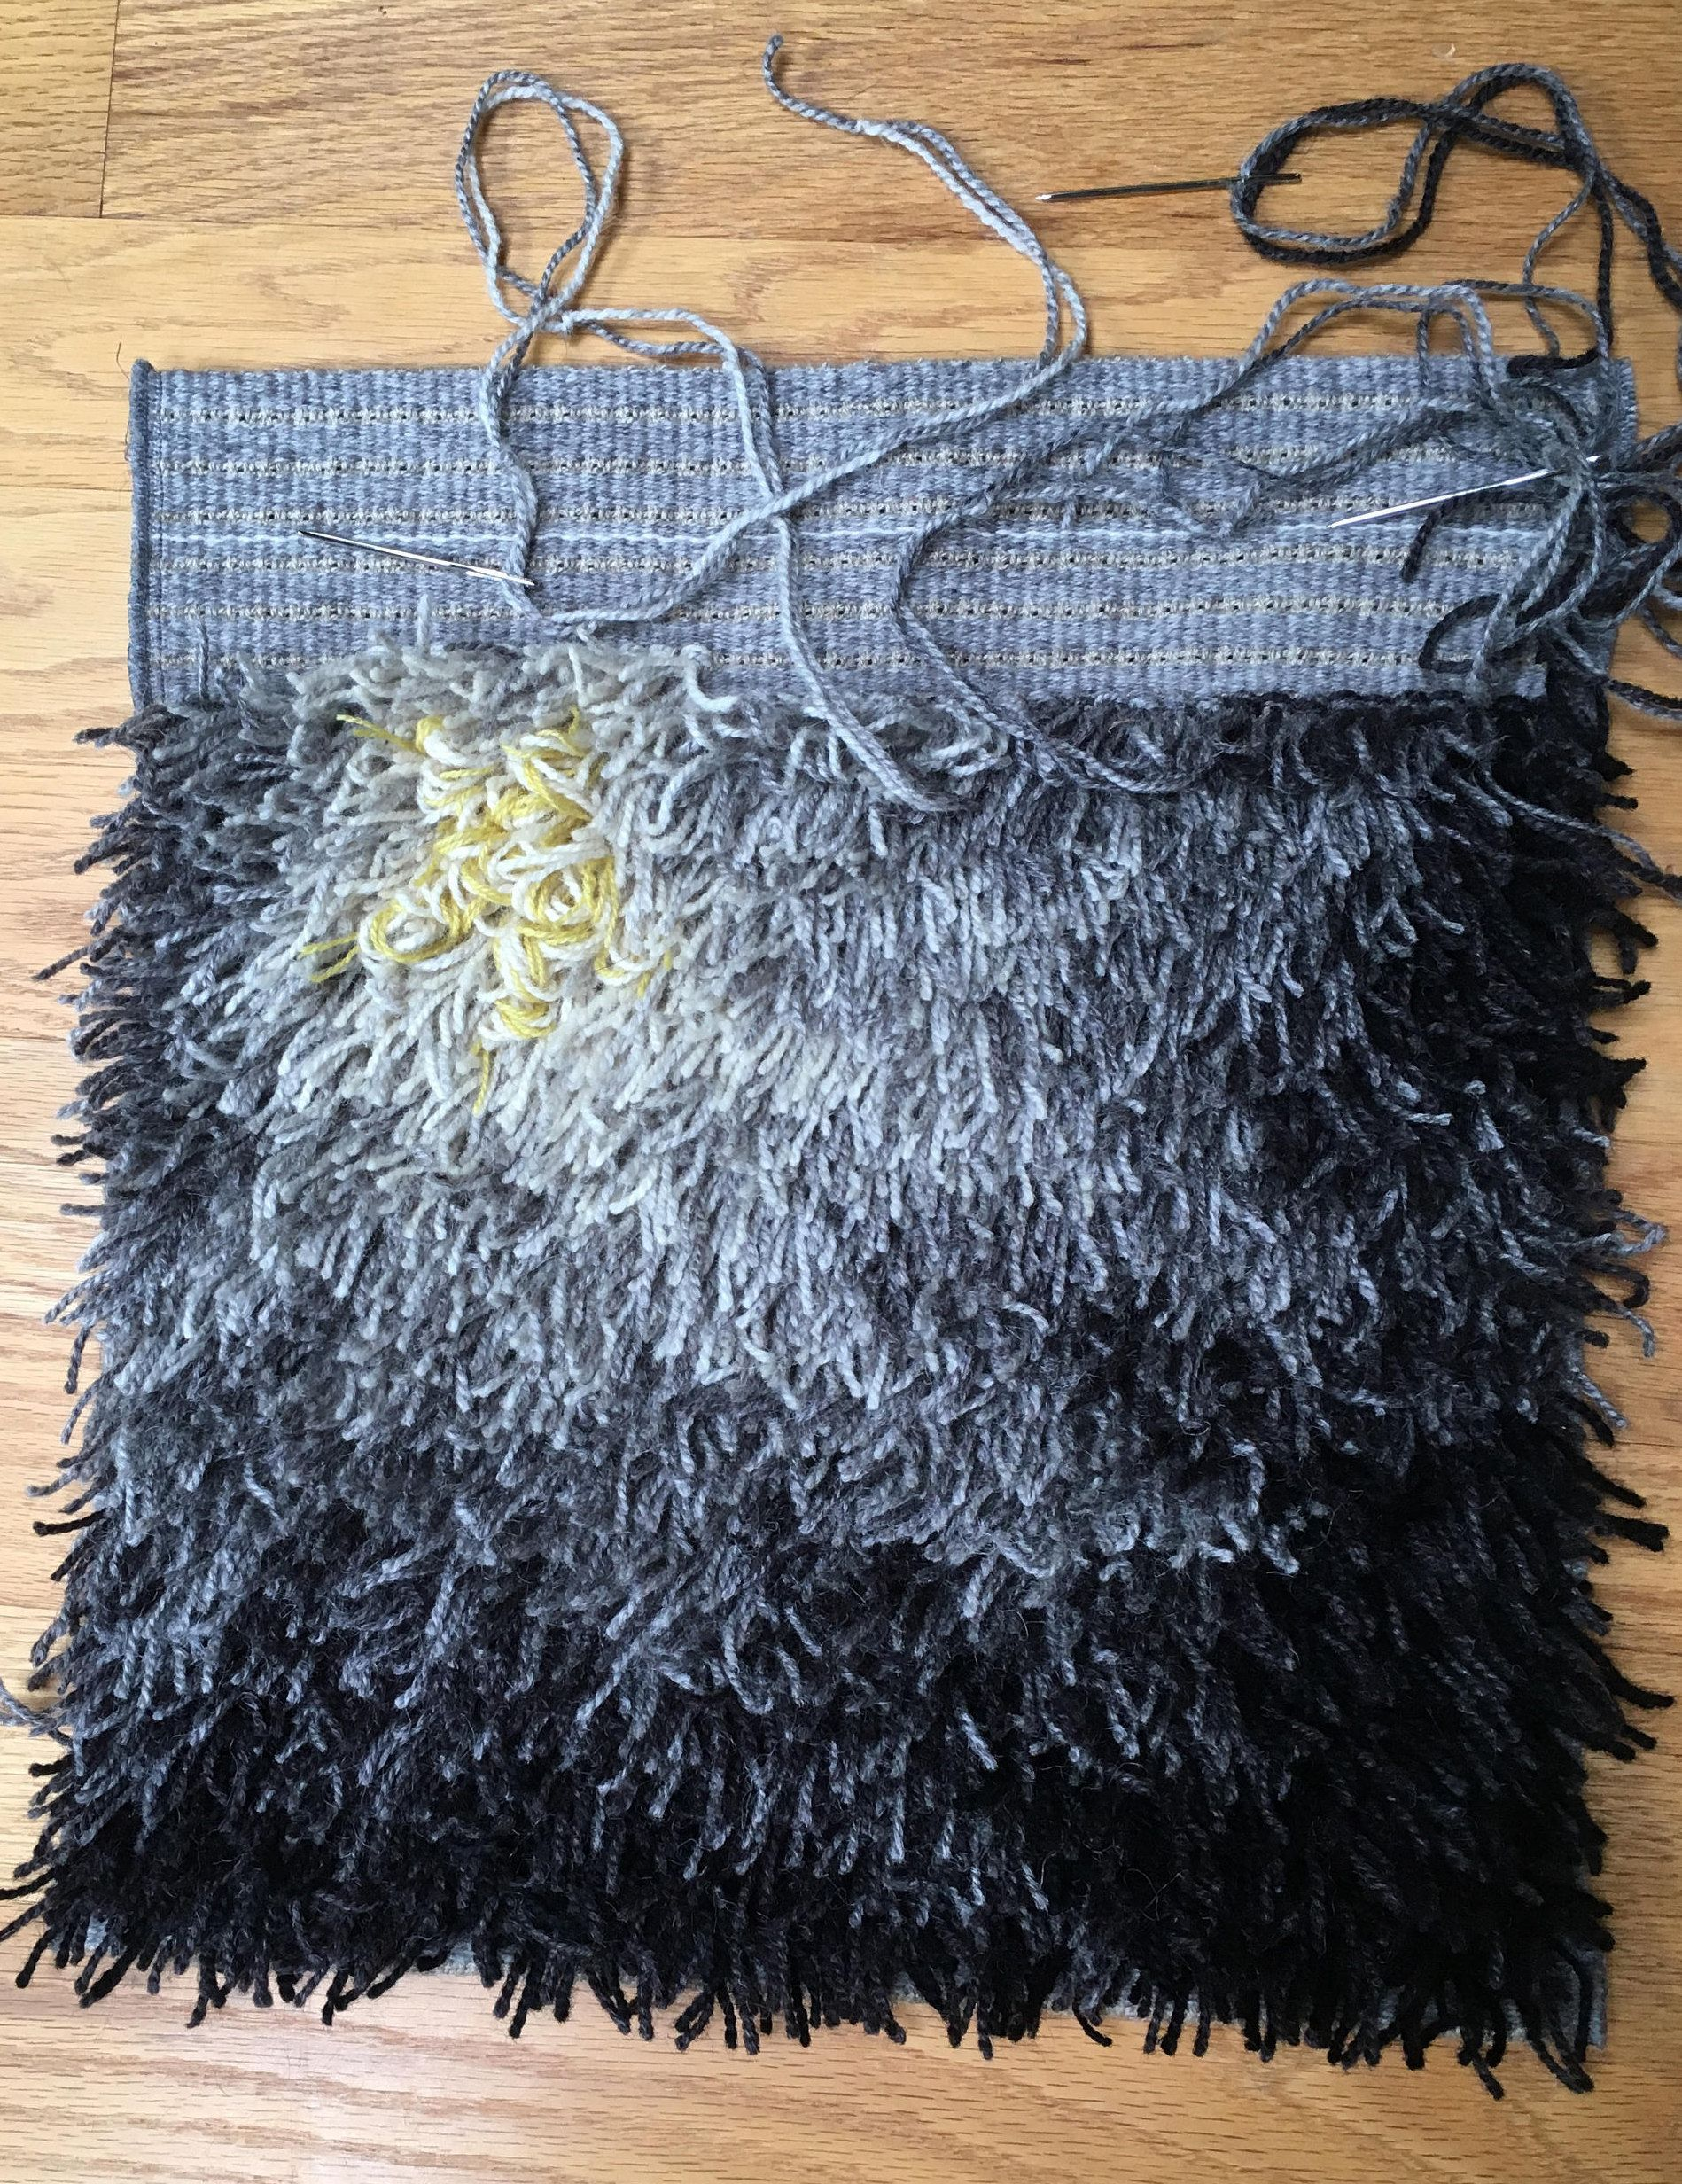 New Fireflower Rya Kit 16 X Natural Grays Virgin Wool Yarn On And Linen Backing With Pattern Drawn The For You By Byrdcall